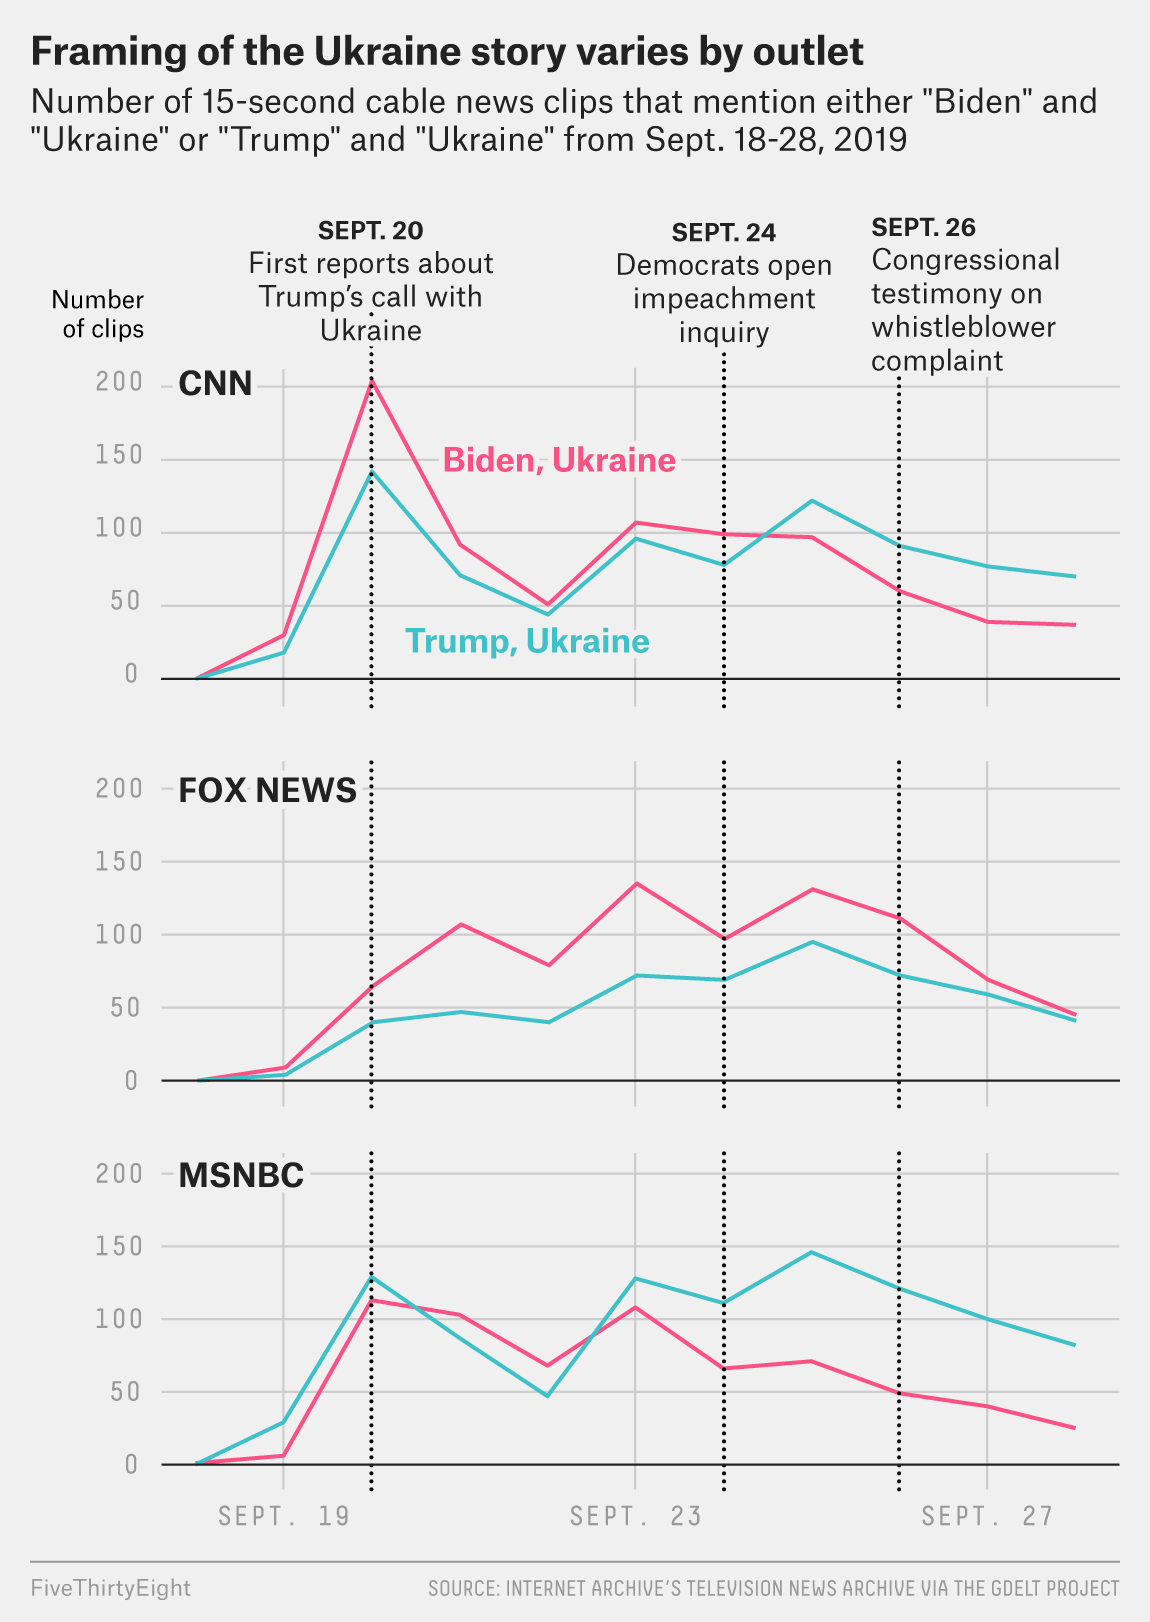 FiveThirtyEight - On Fox, Trump Is Not At The Center Of The Ukraine Story